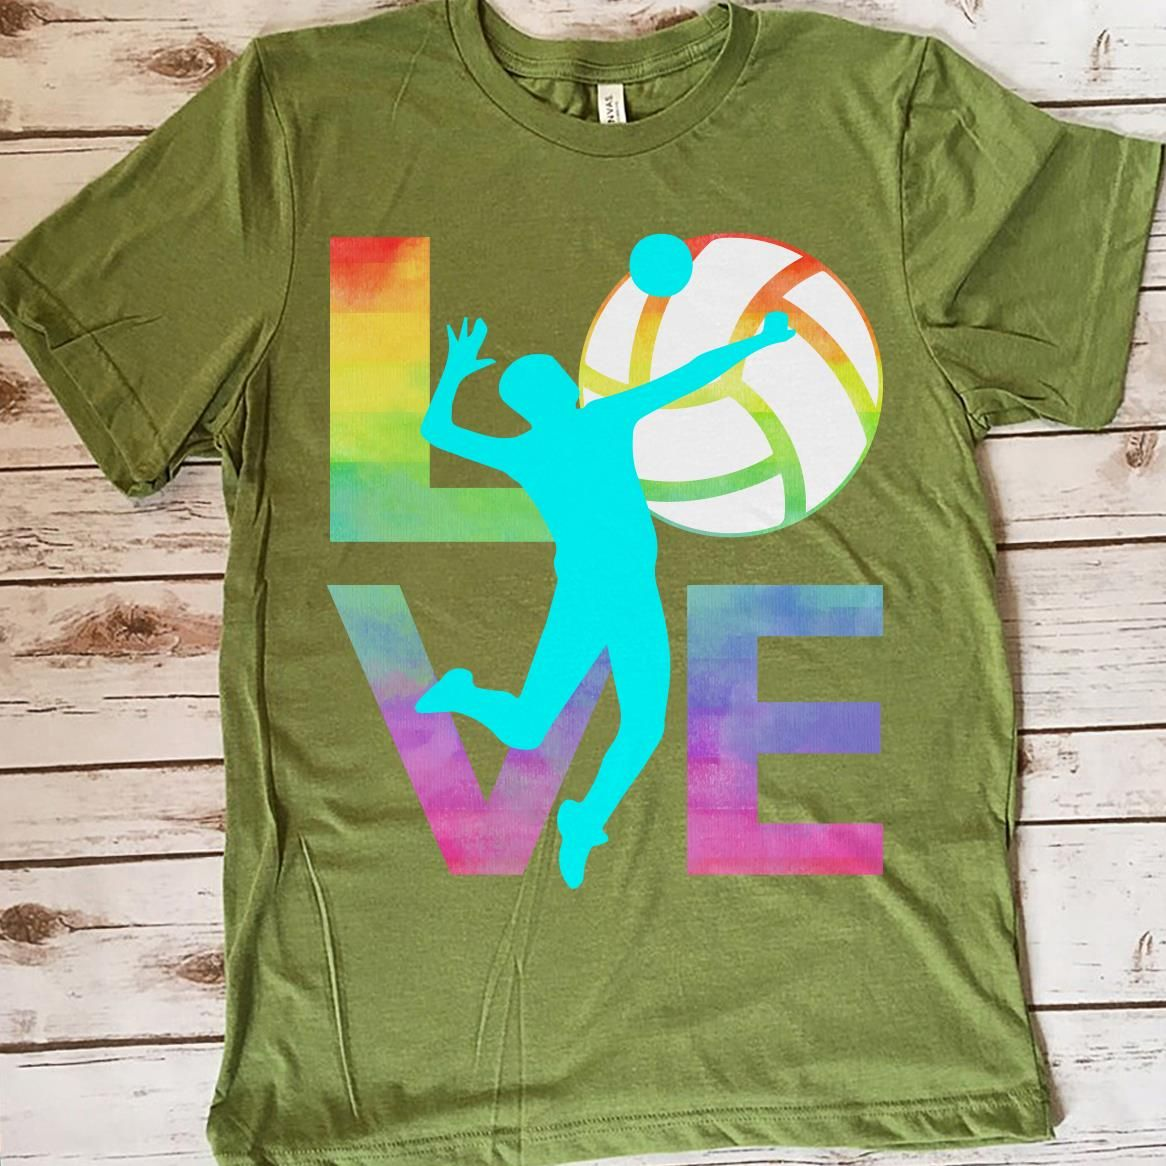 Love Volleyball Great Gifts For Volleyball Players Volleyball Lovers Mom Dad Son Daughter Sister B Volleyball Tshirts Volleyball Pictures Great T Shirts